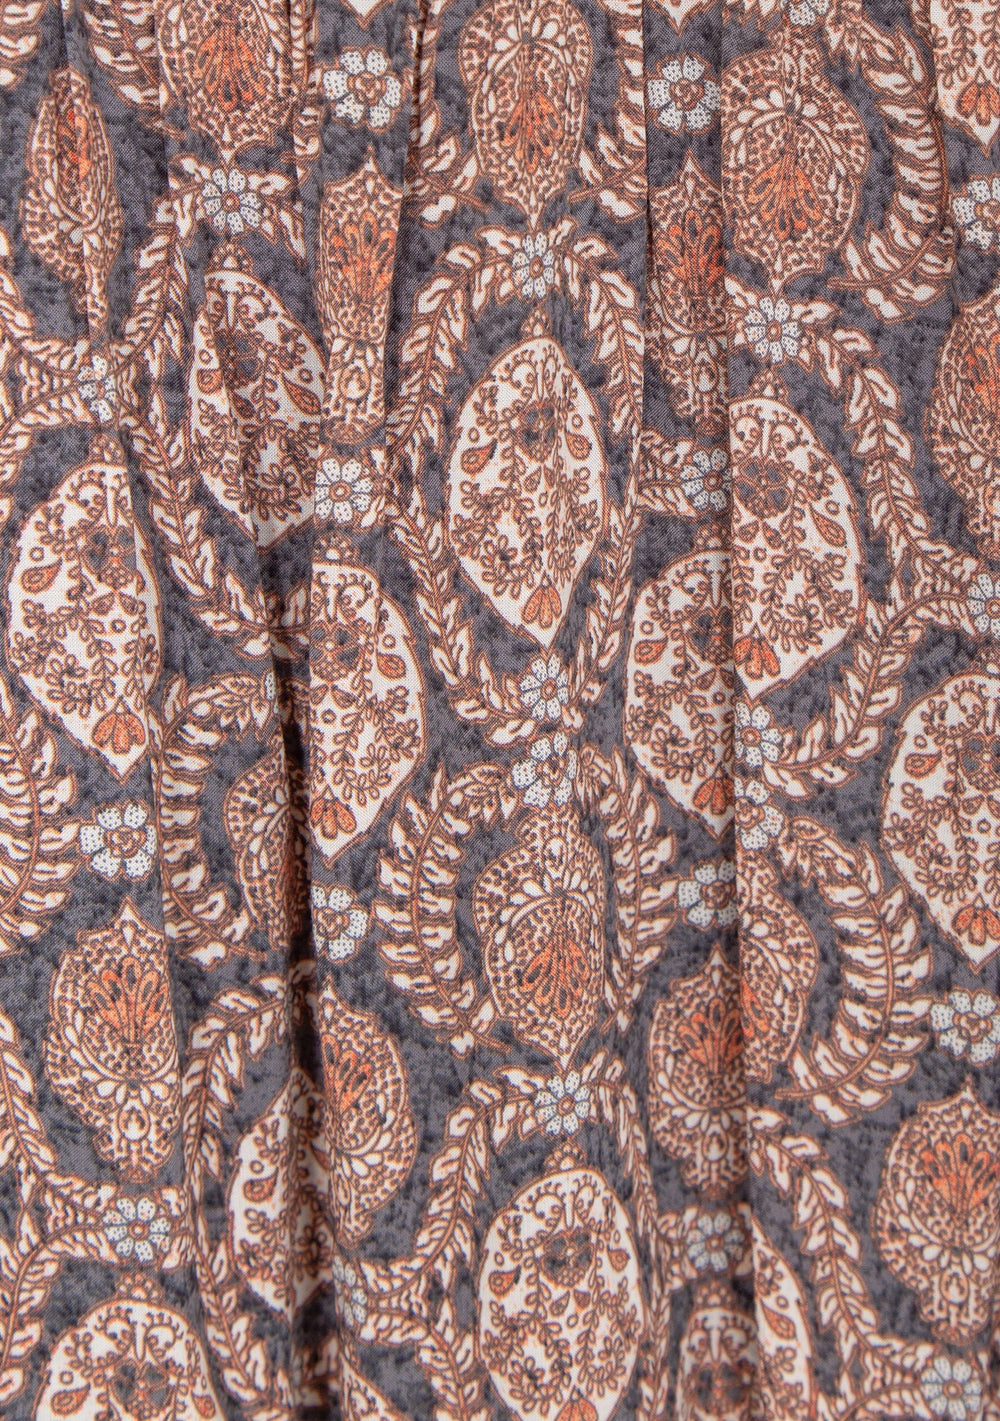 Close up of the Paisley Fabric on the Auguste Montague Bennett Shirred Midi Dress in Ink